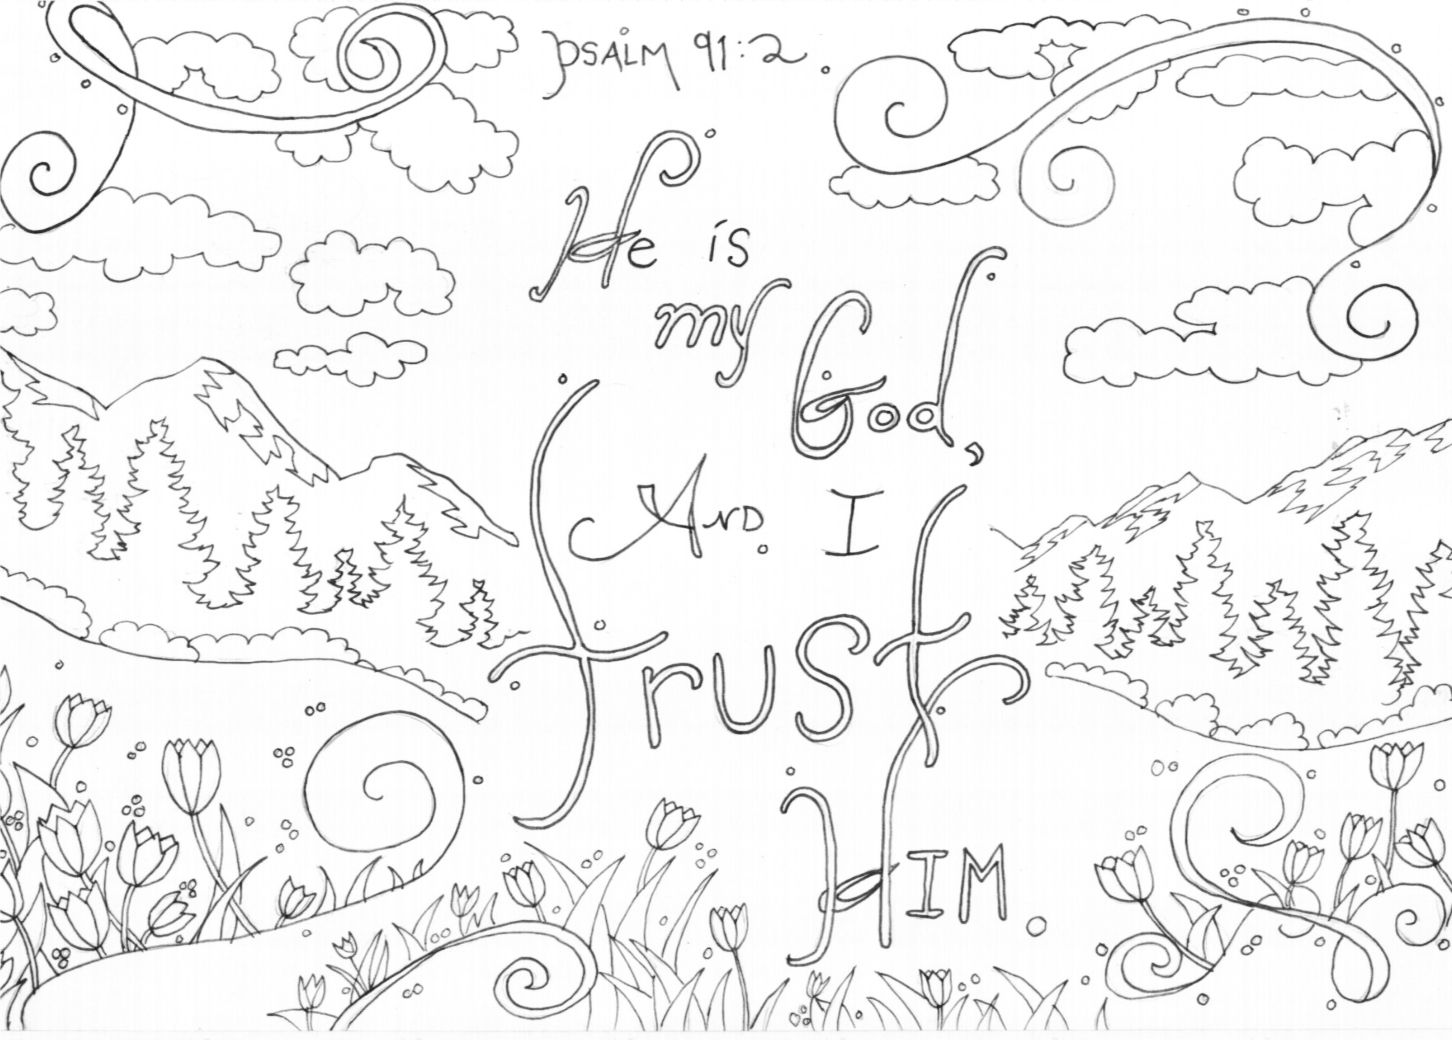 He Is My God And I Trust Him Psalm 91 2